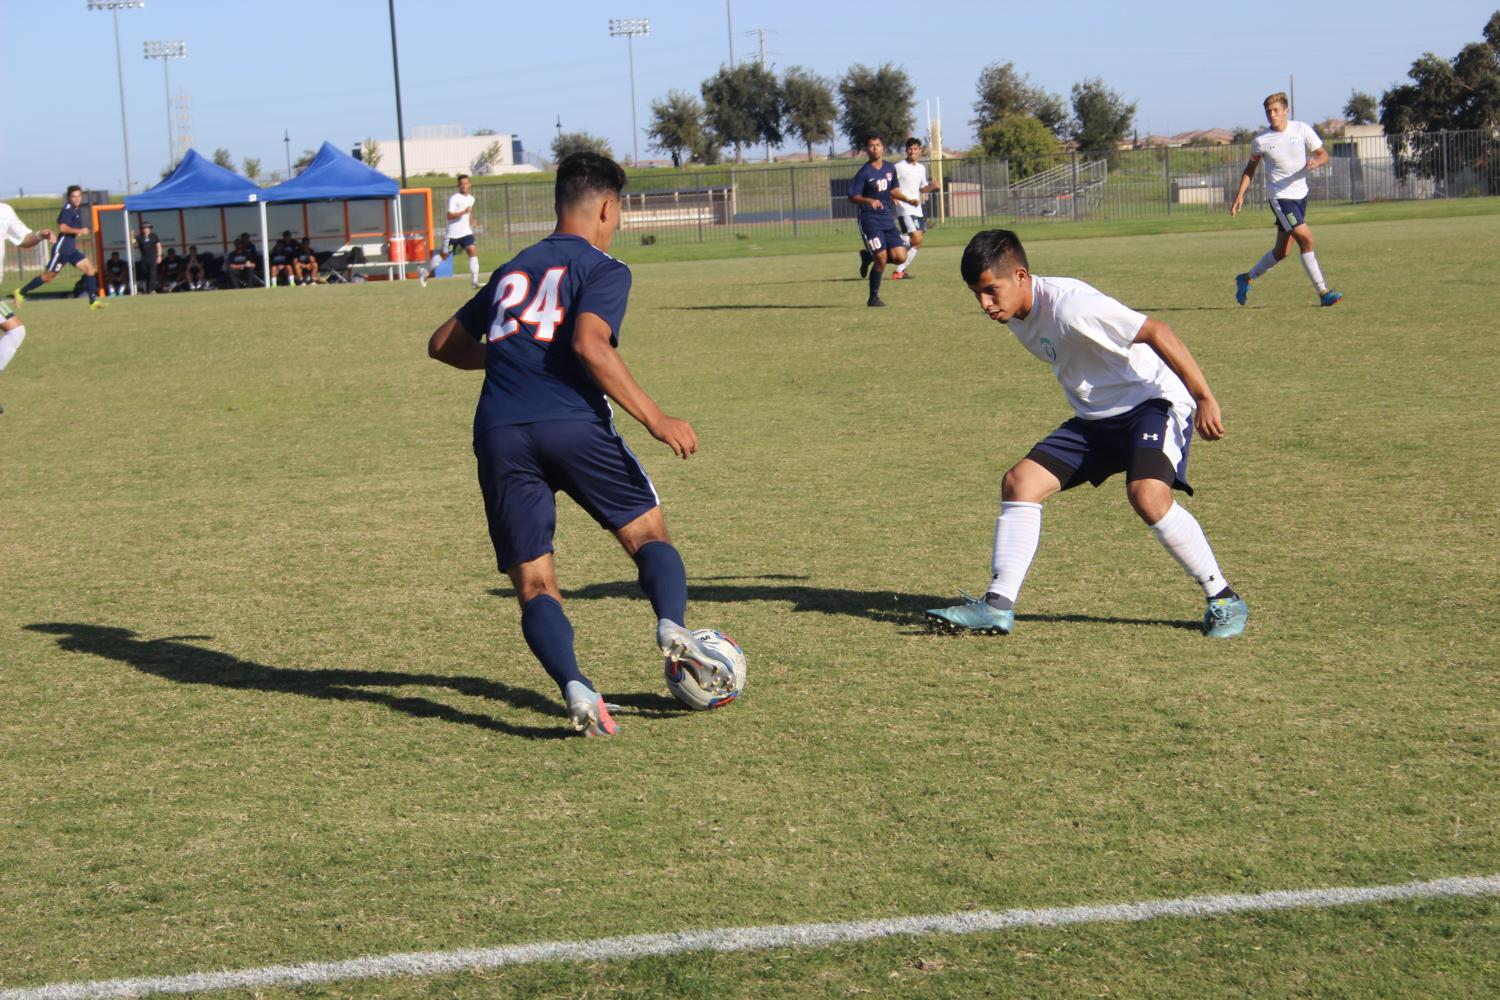 Freshman forward Francisco Comparan faces off one-on-one in Friday's game versus Clovis.